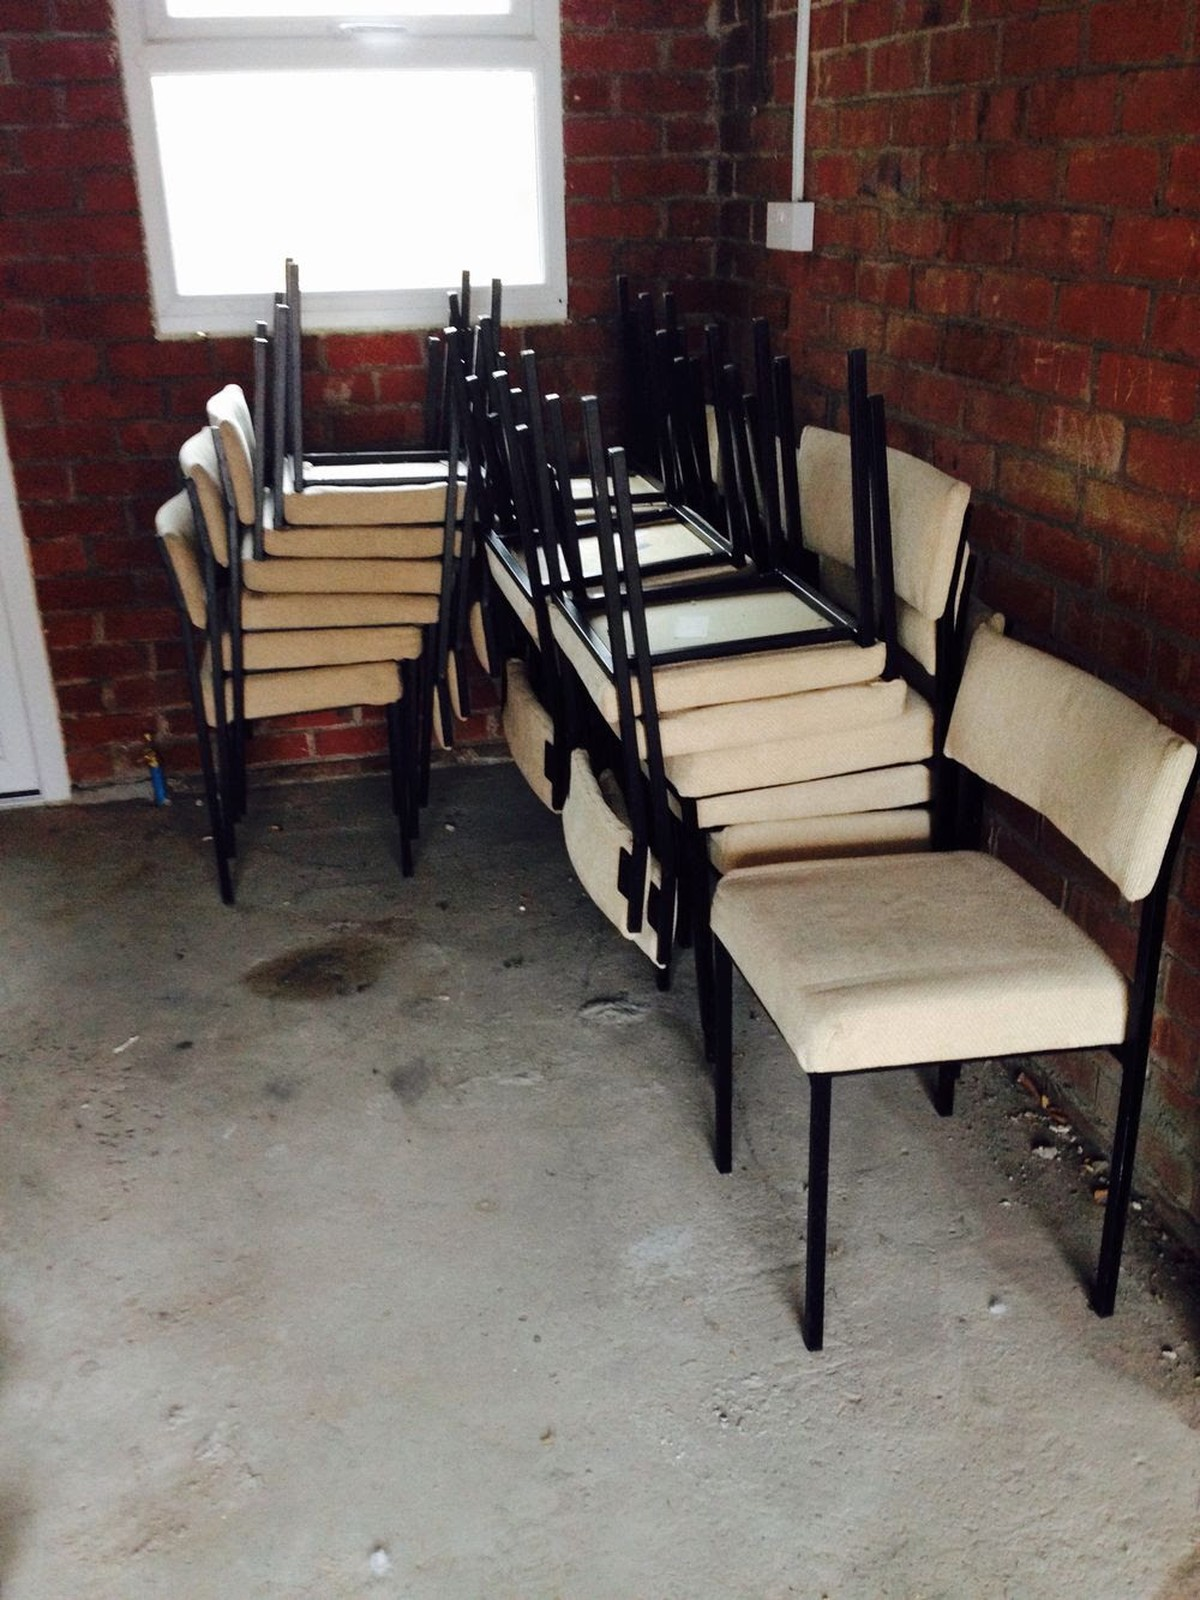 Waiting Room Chairs Cheap Secondhand Chairs And Tables Office Furniture Office